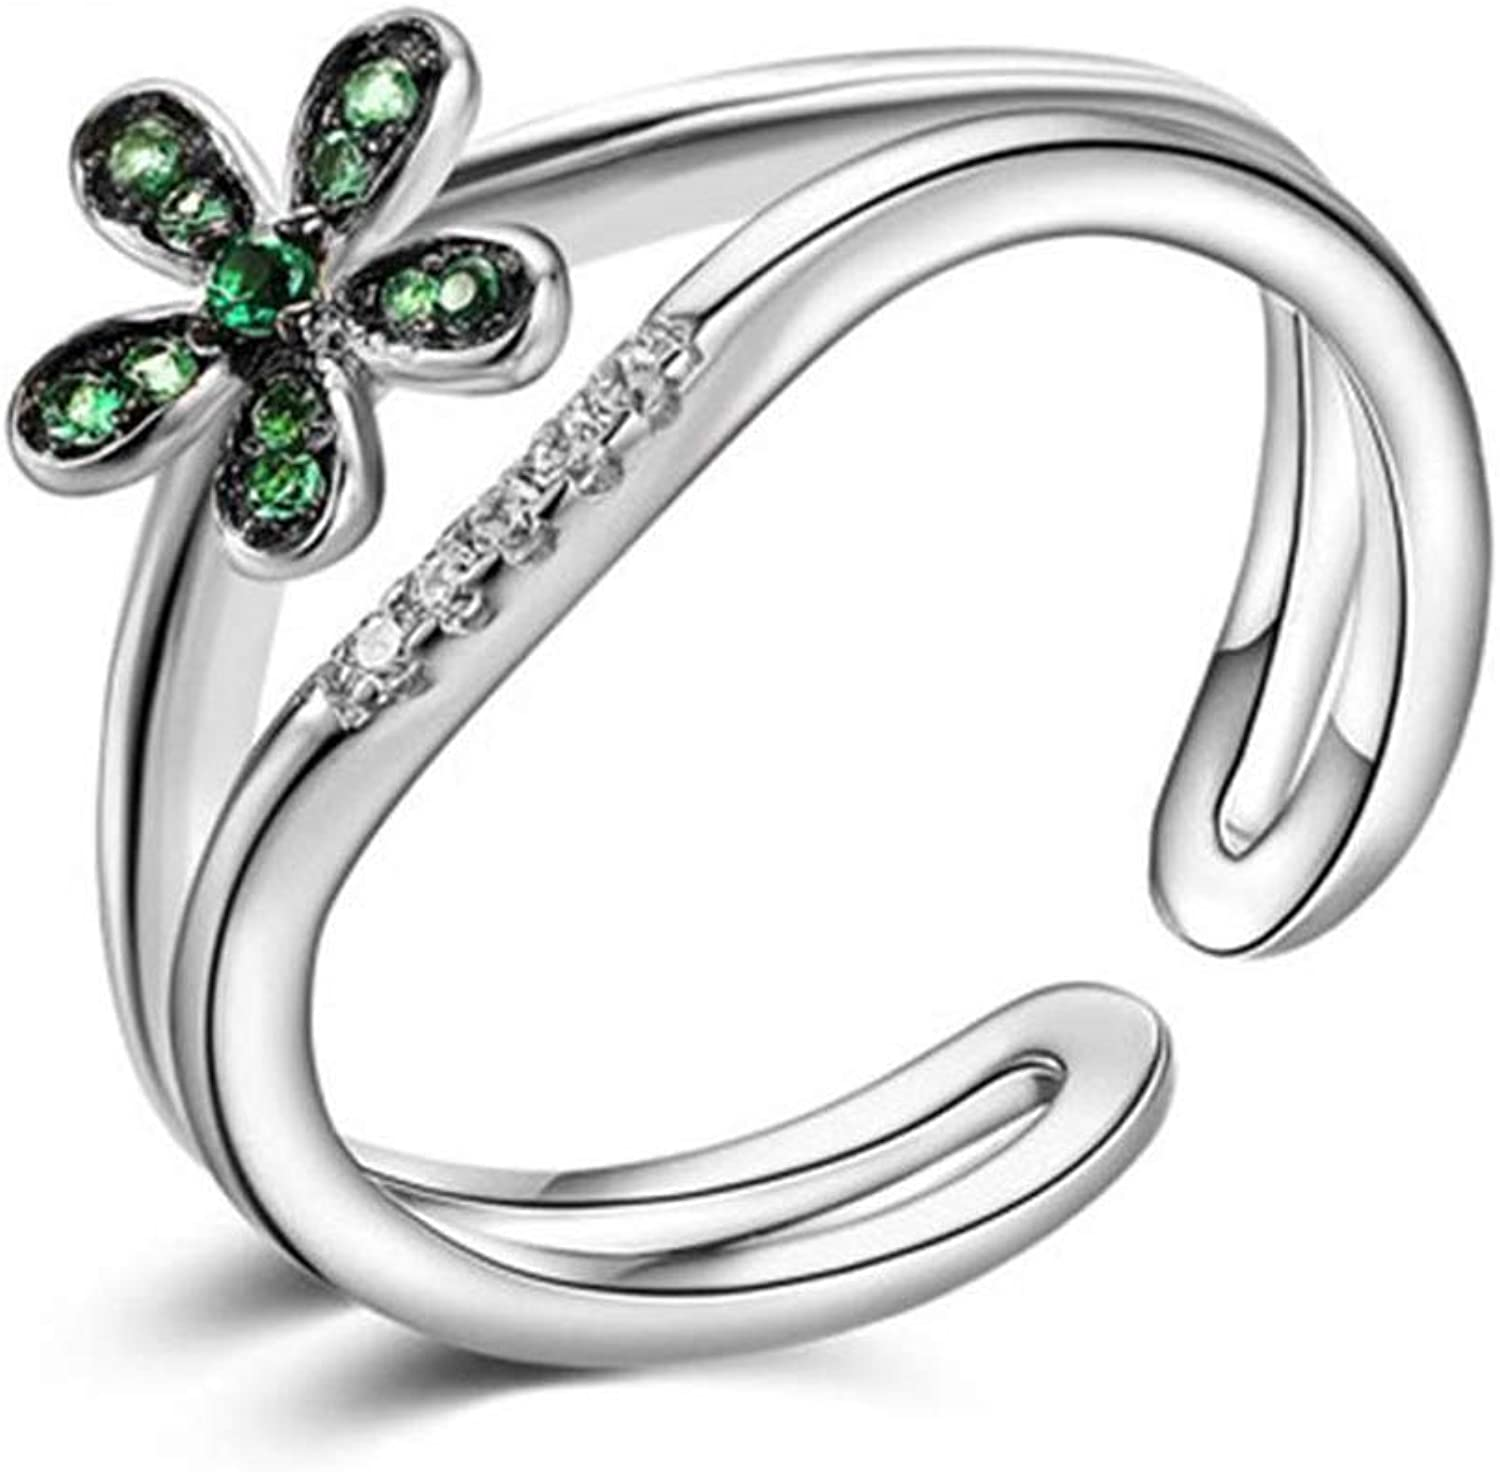 DTZH Rings Jewellery Ring Lady Ring S925 Silver Blossom Opening Ring Give it to Dear People